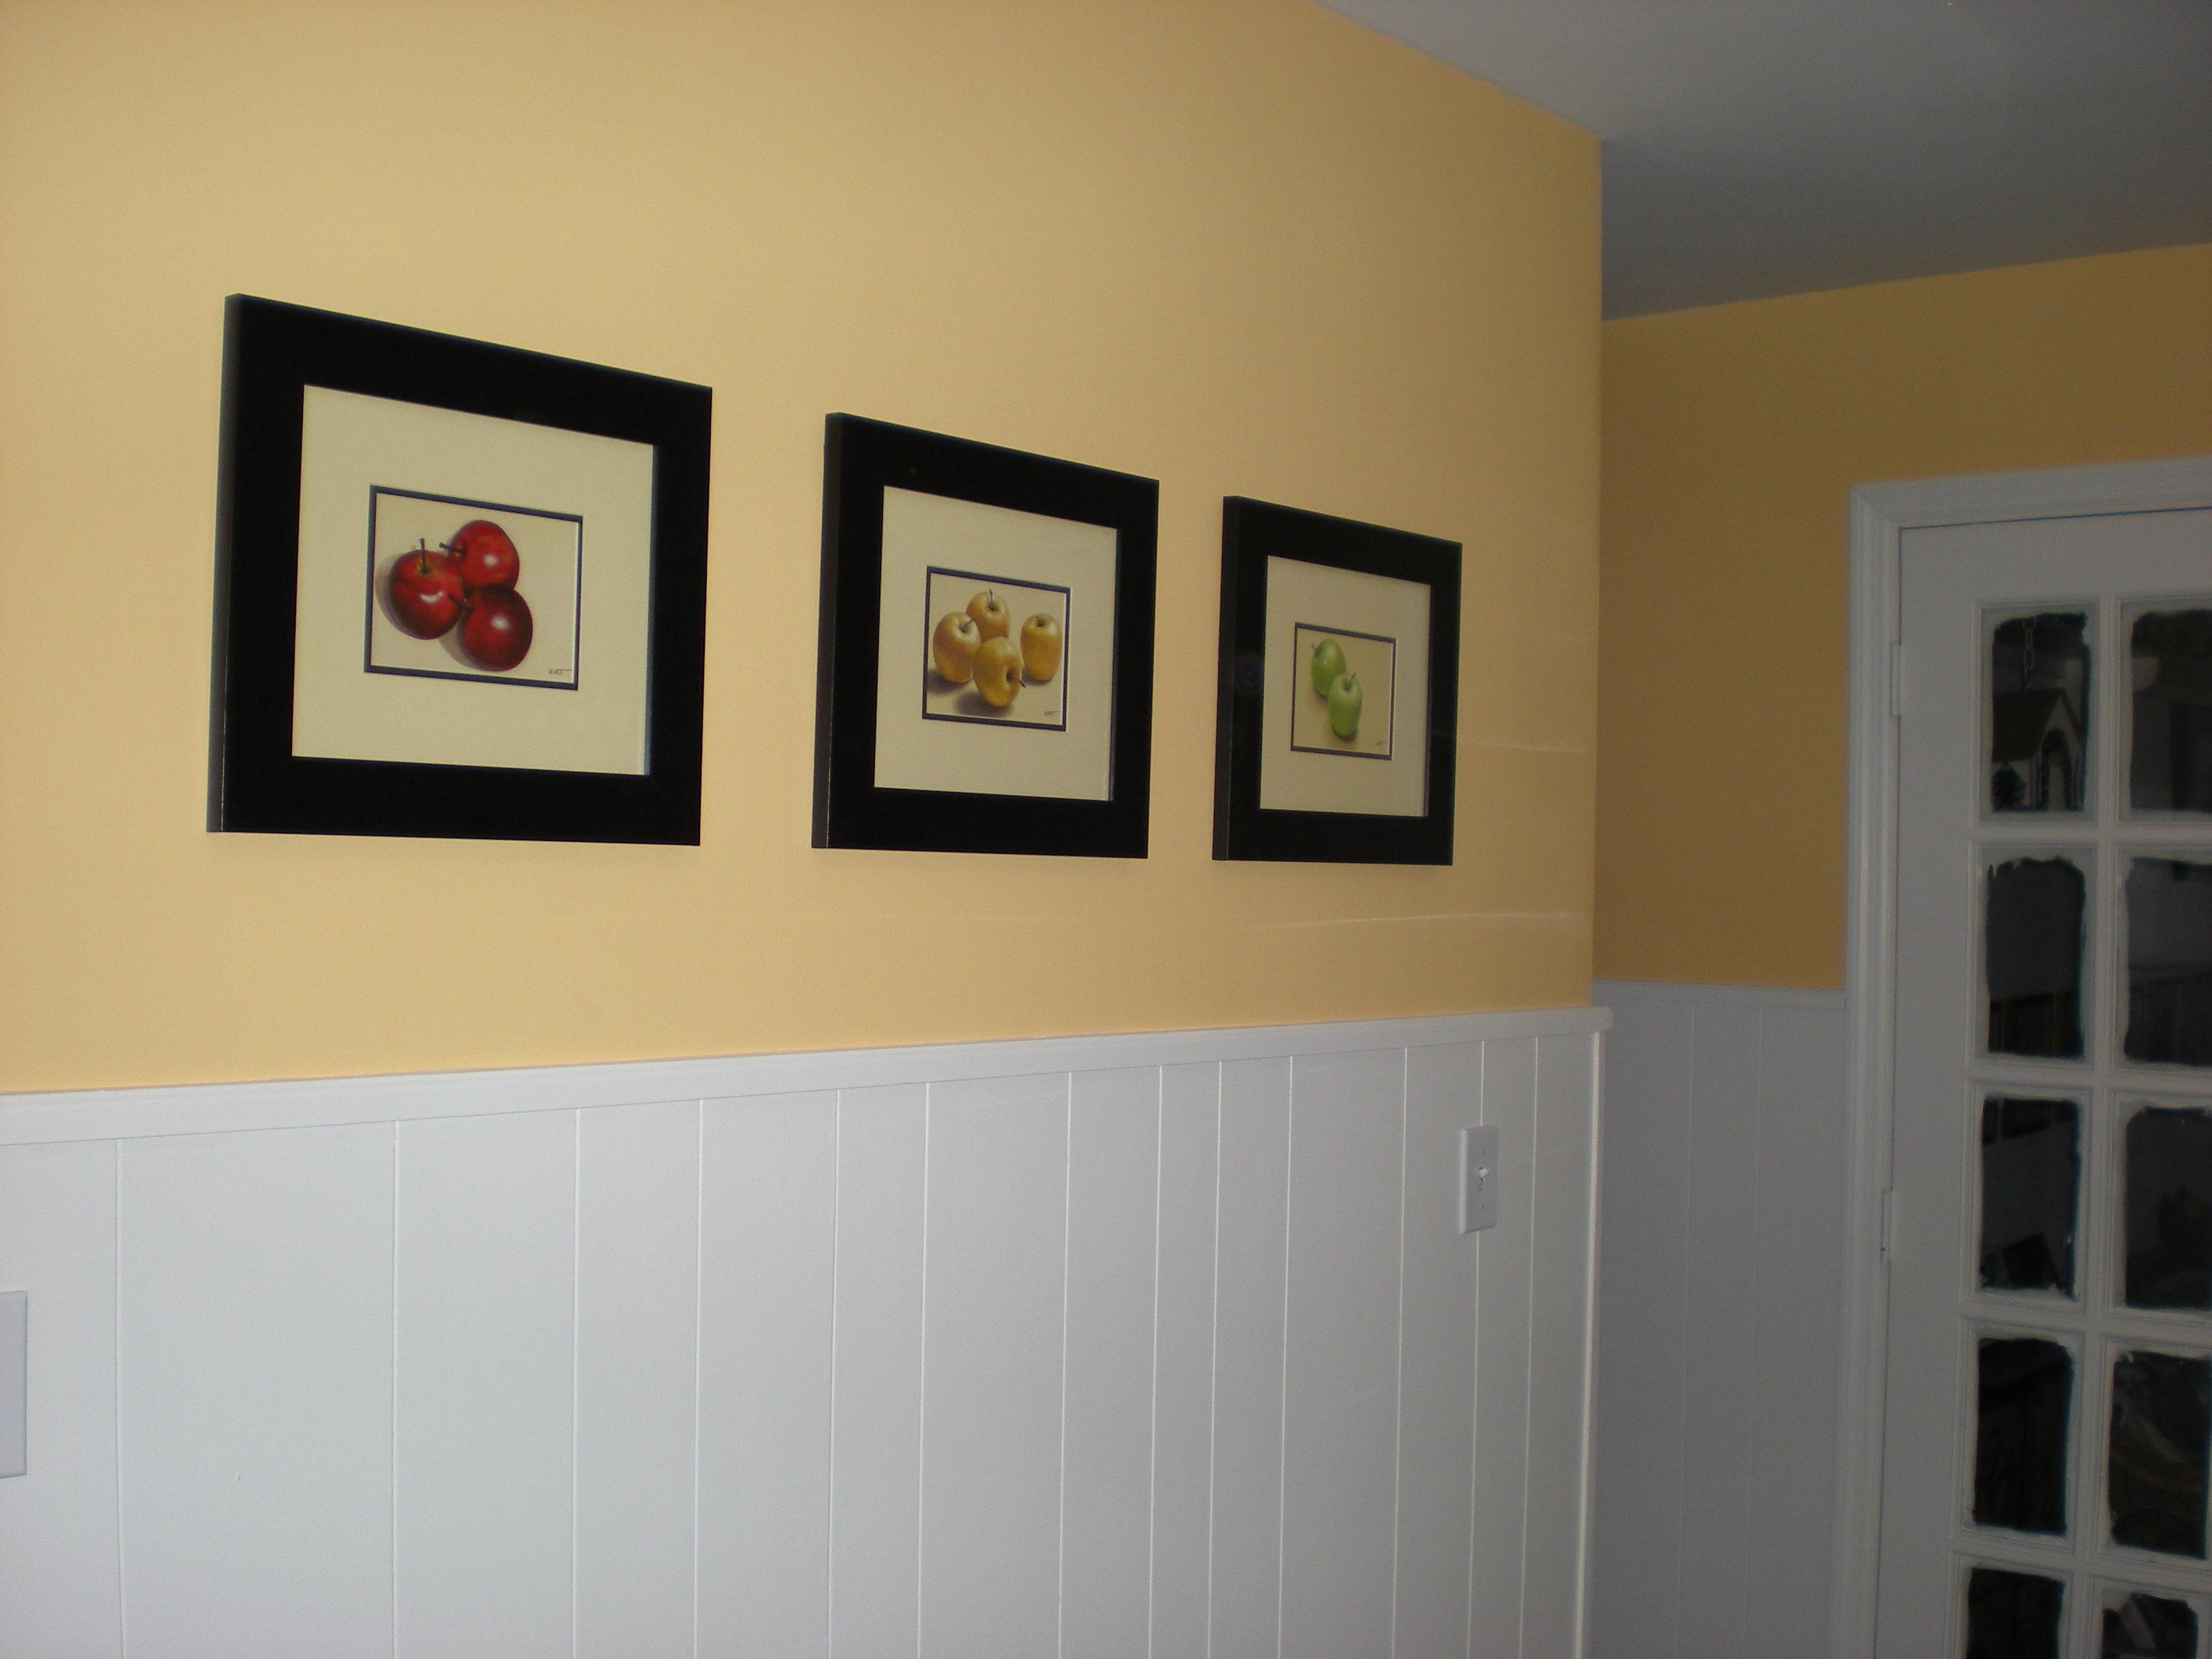 Kitchen : Dining Room Wall Art Artwork For Kitchen Walls Cheap Pertaining To Art For Kitchen Walls (View 8 of 20)